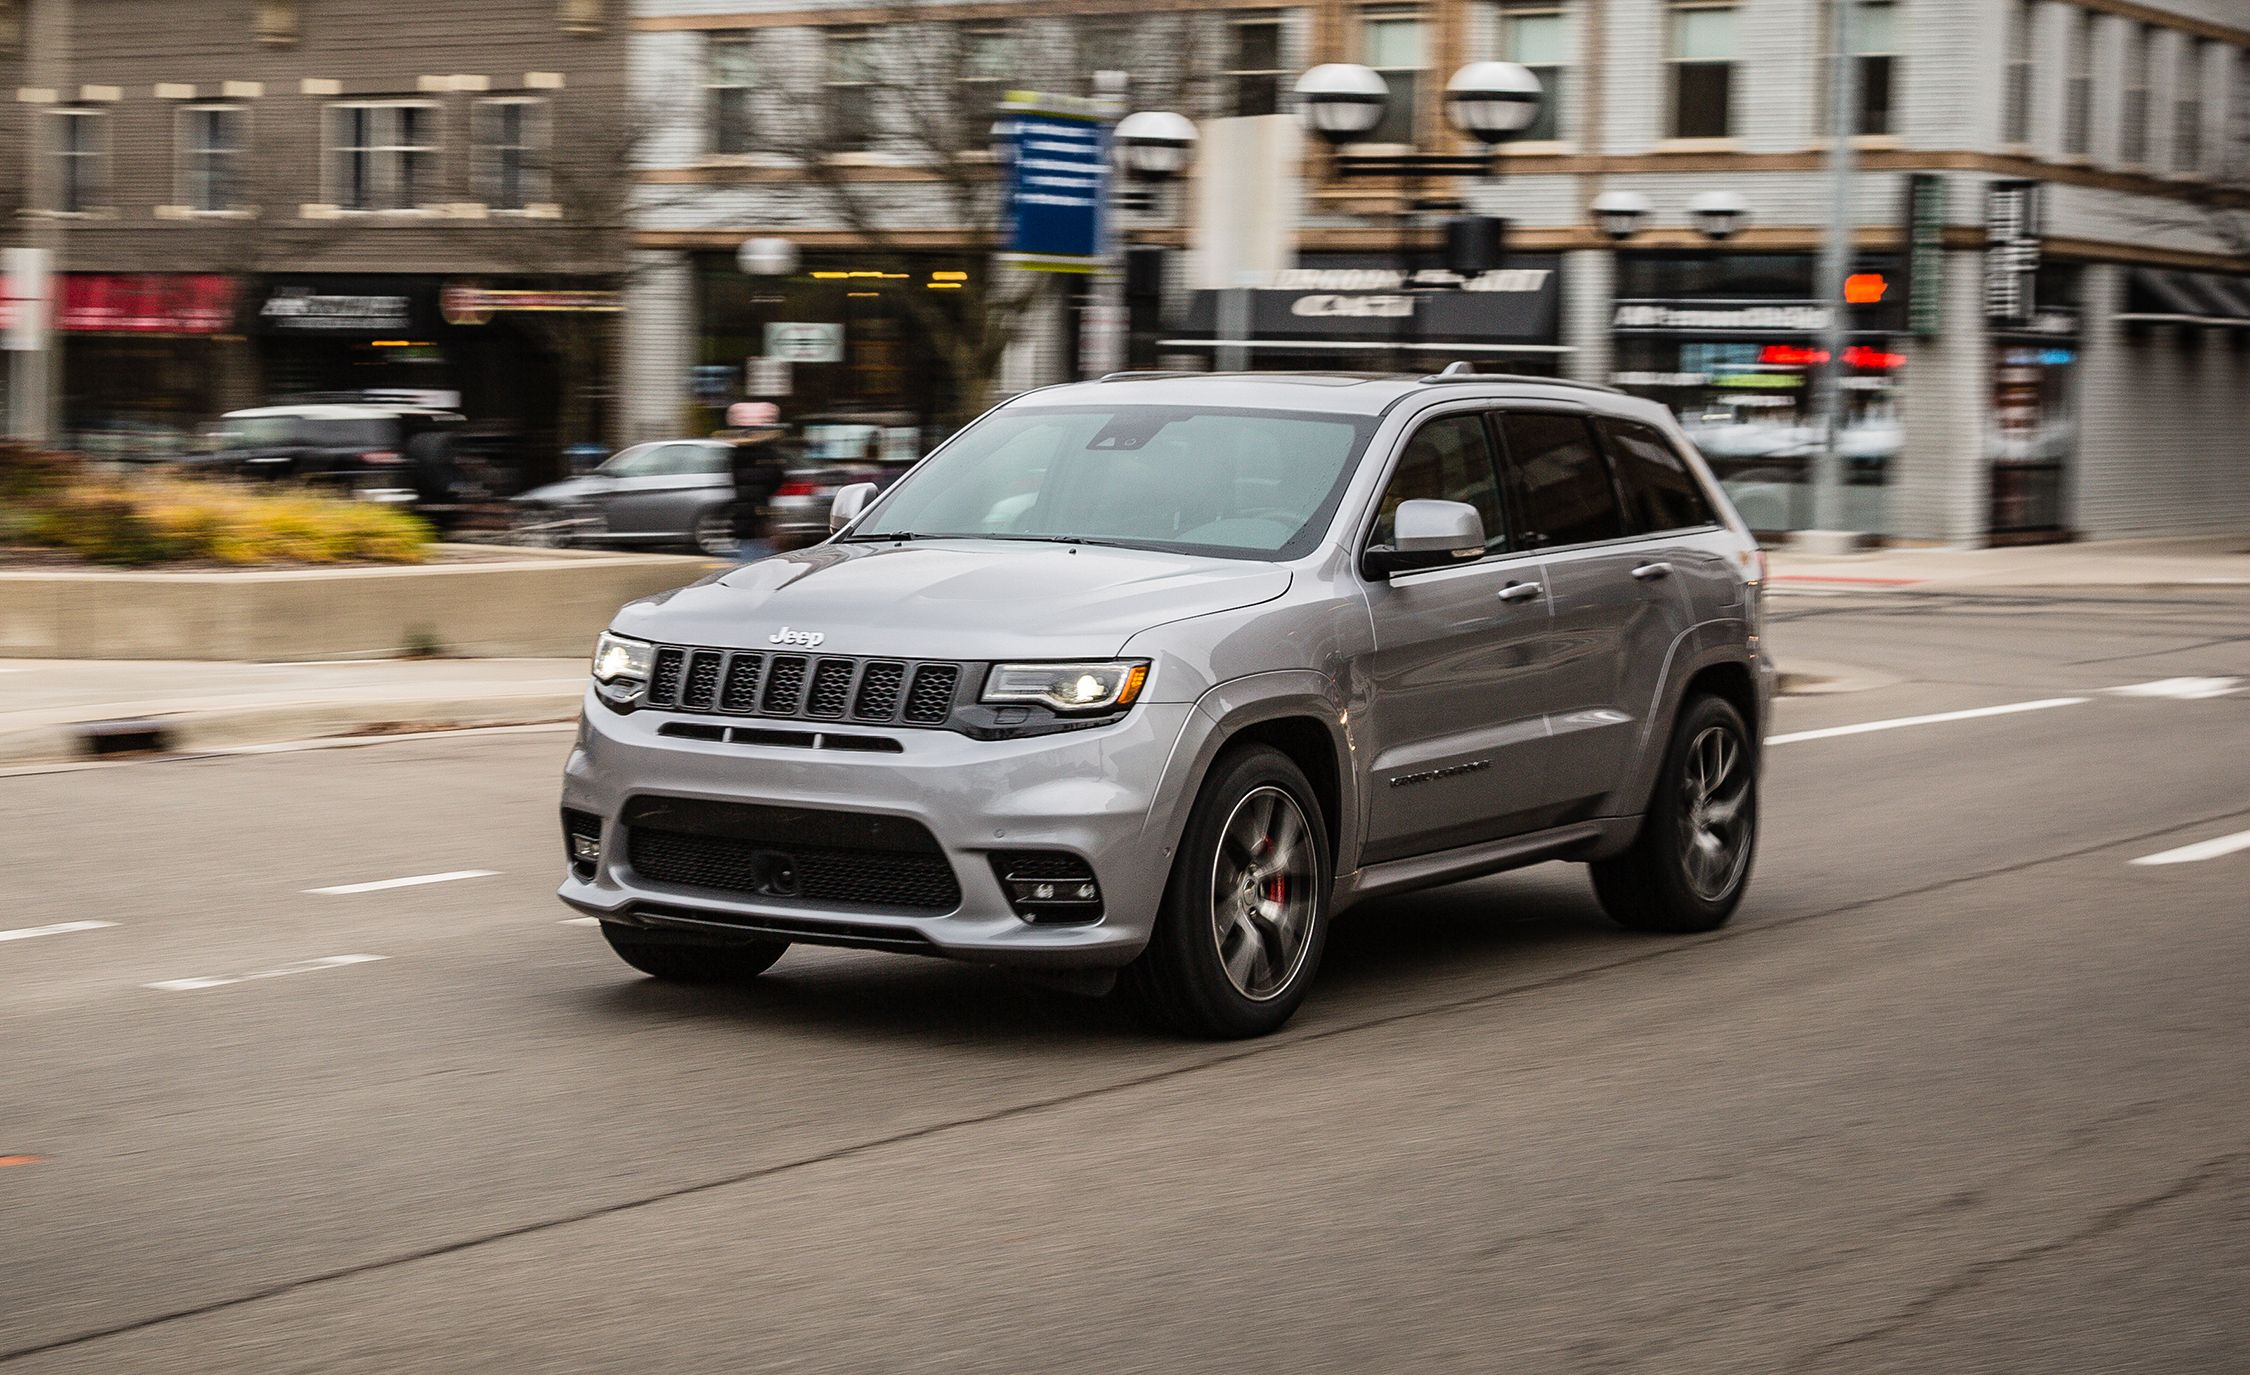 Lovely 2017 Jeep Grand Cherokee SRT